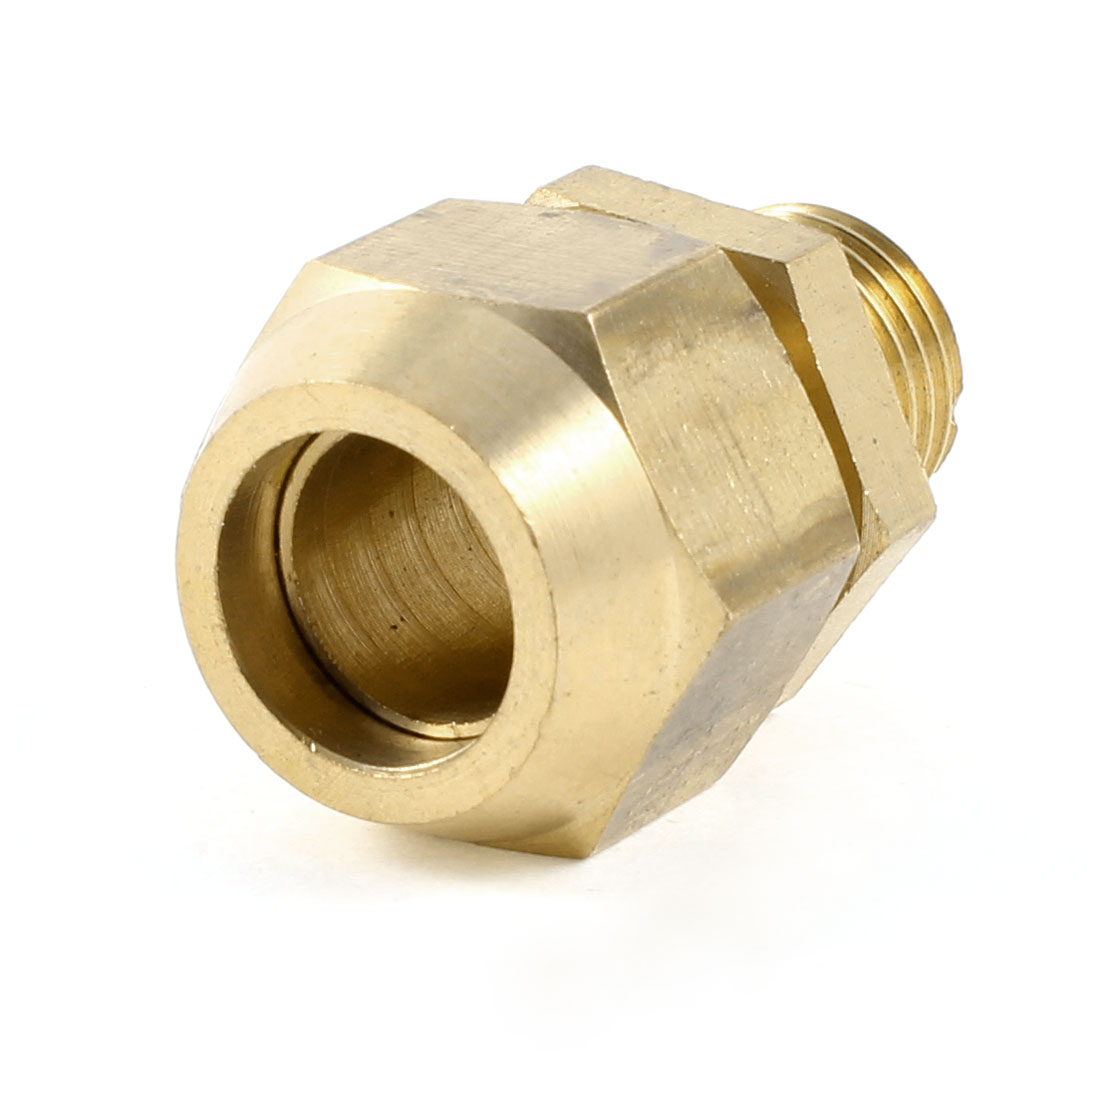 "8mm x 1/4"" PT Male Threaded Metal Adapter Hose Quick Joint Connector Gold Tone"